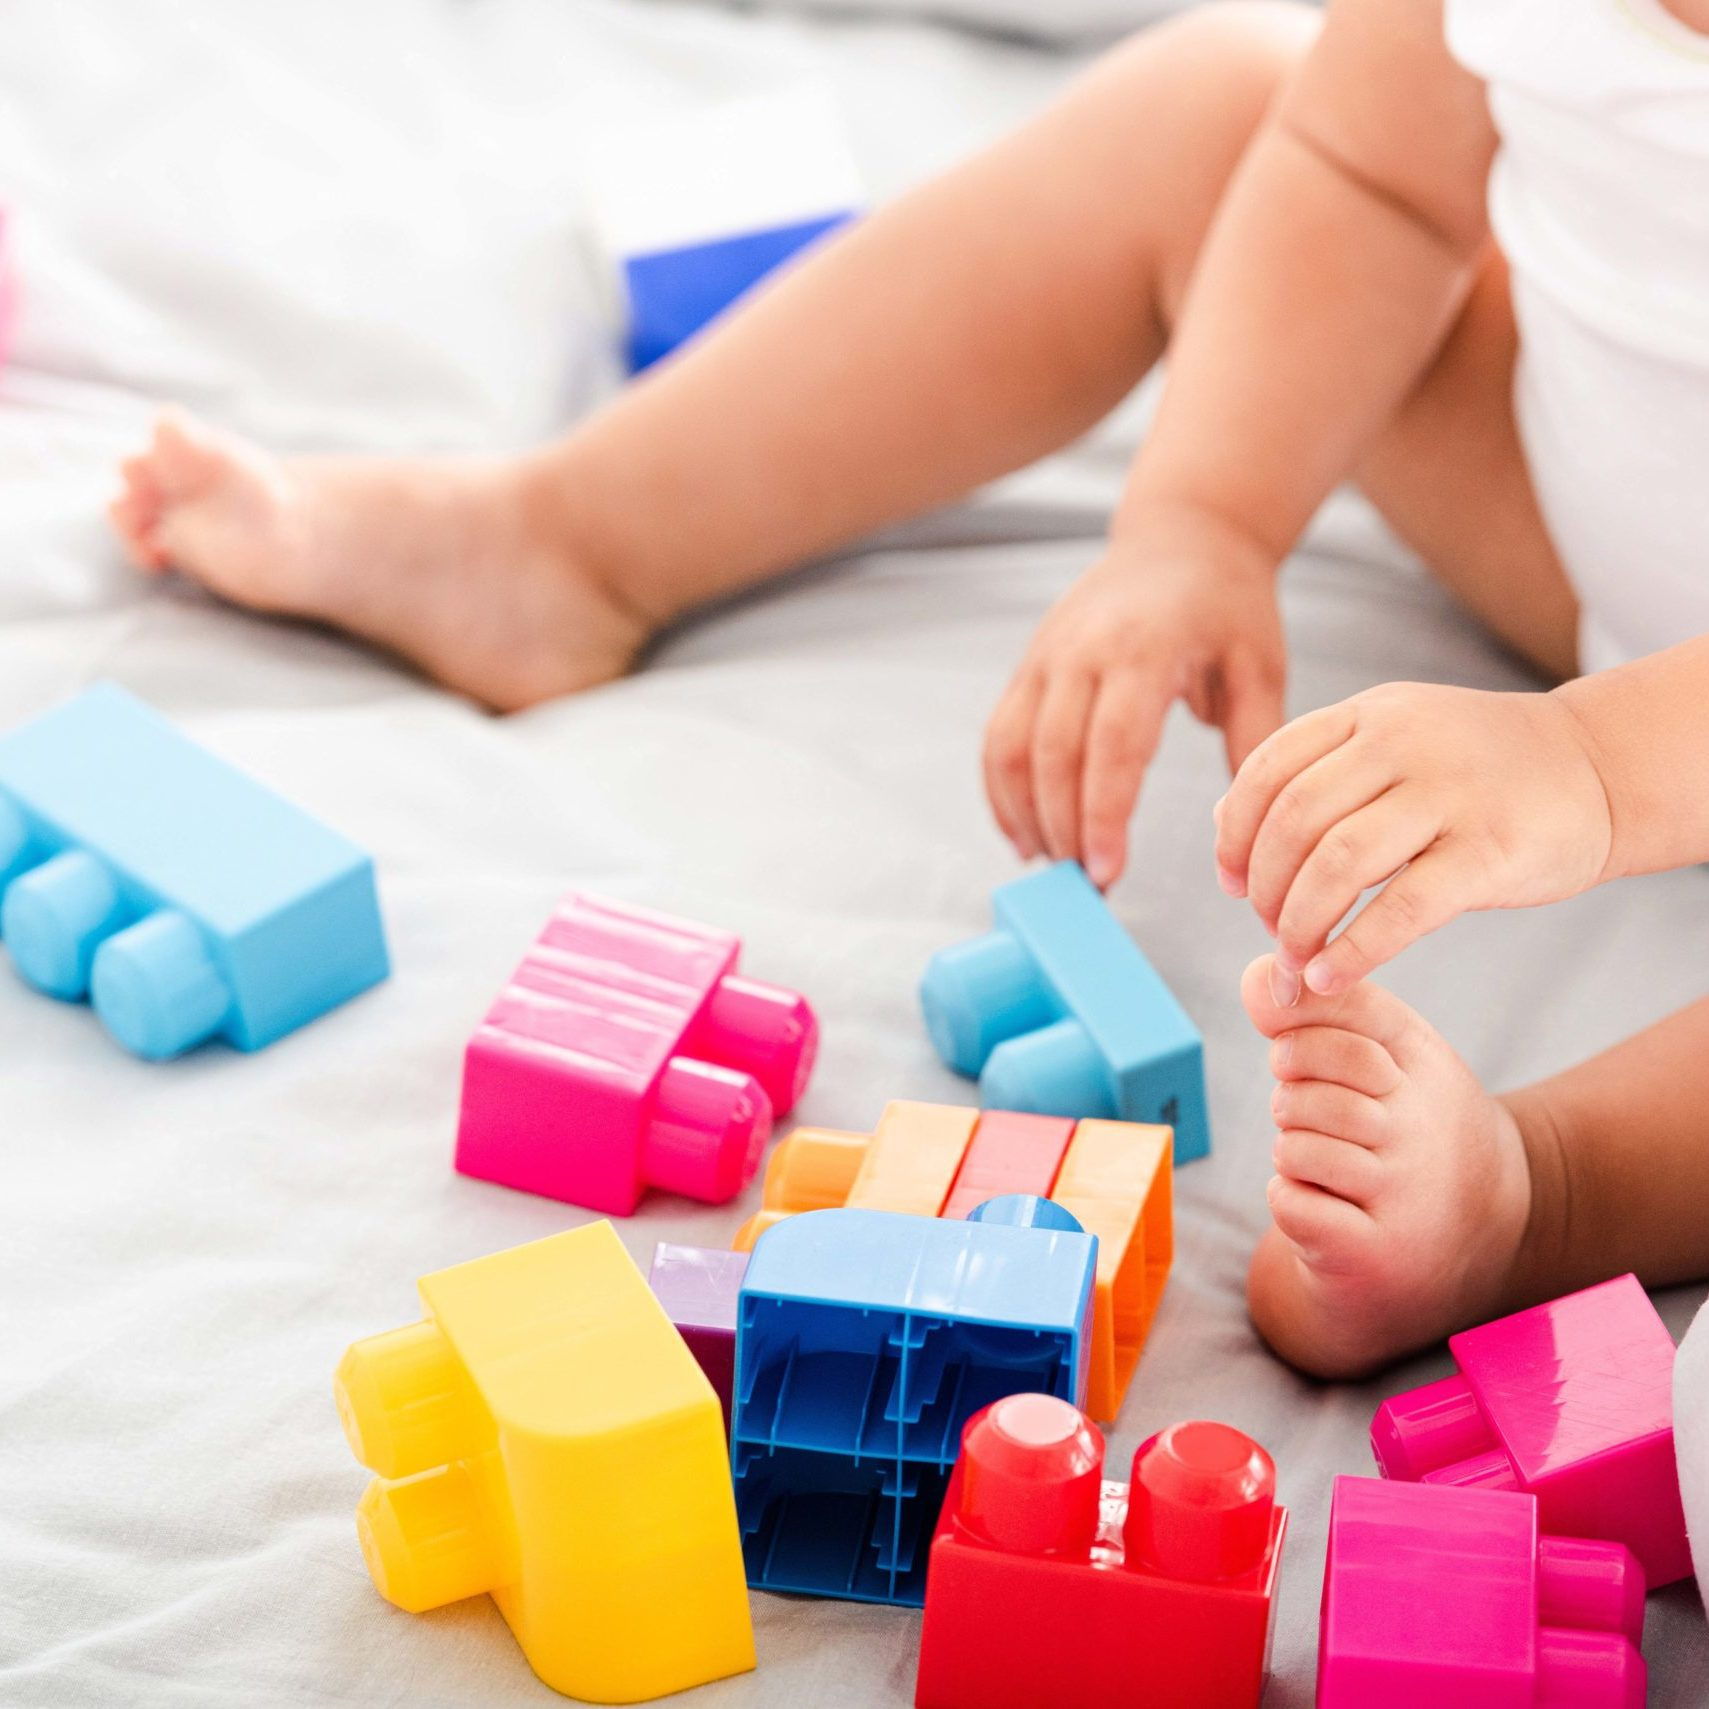 Partial view of barefoot baby in white clothes sitting on bed and playing with bright construction